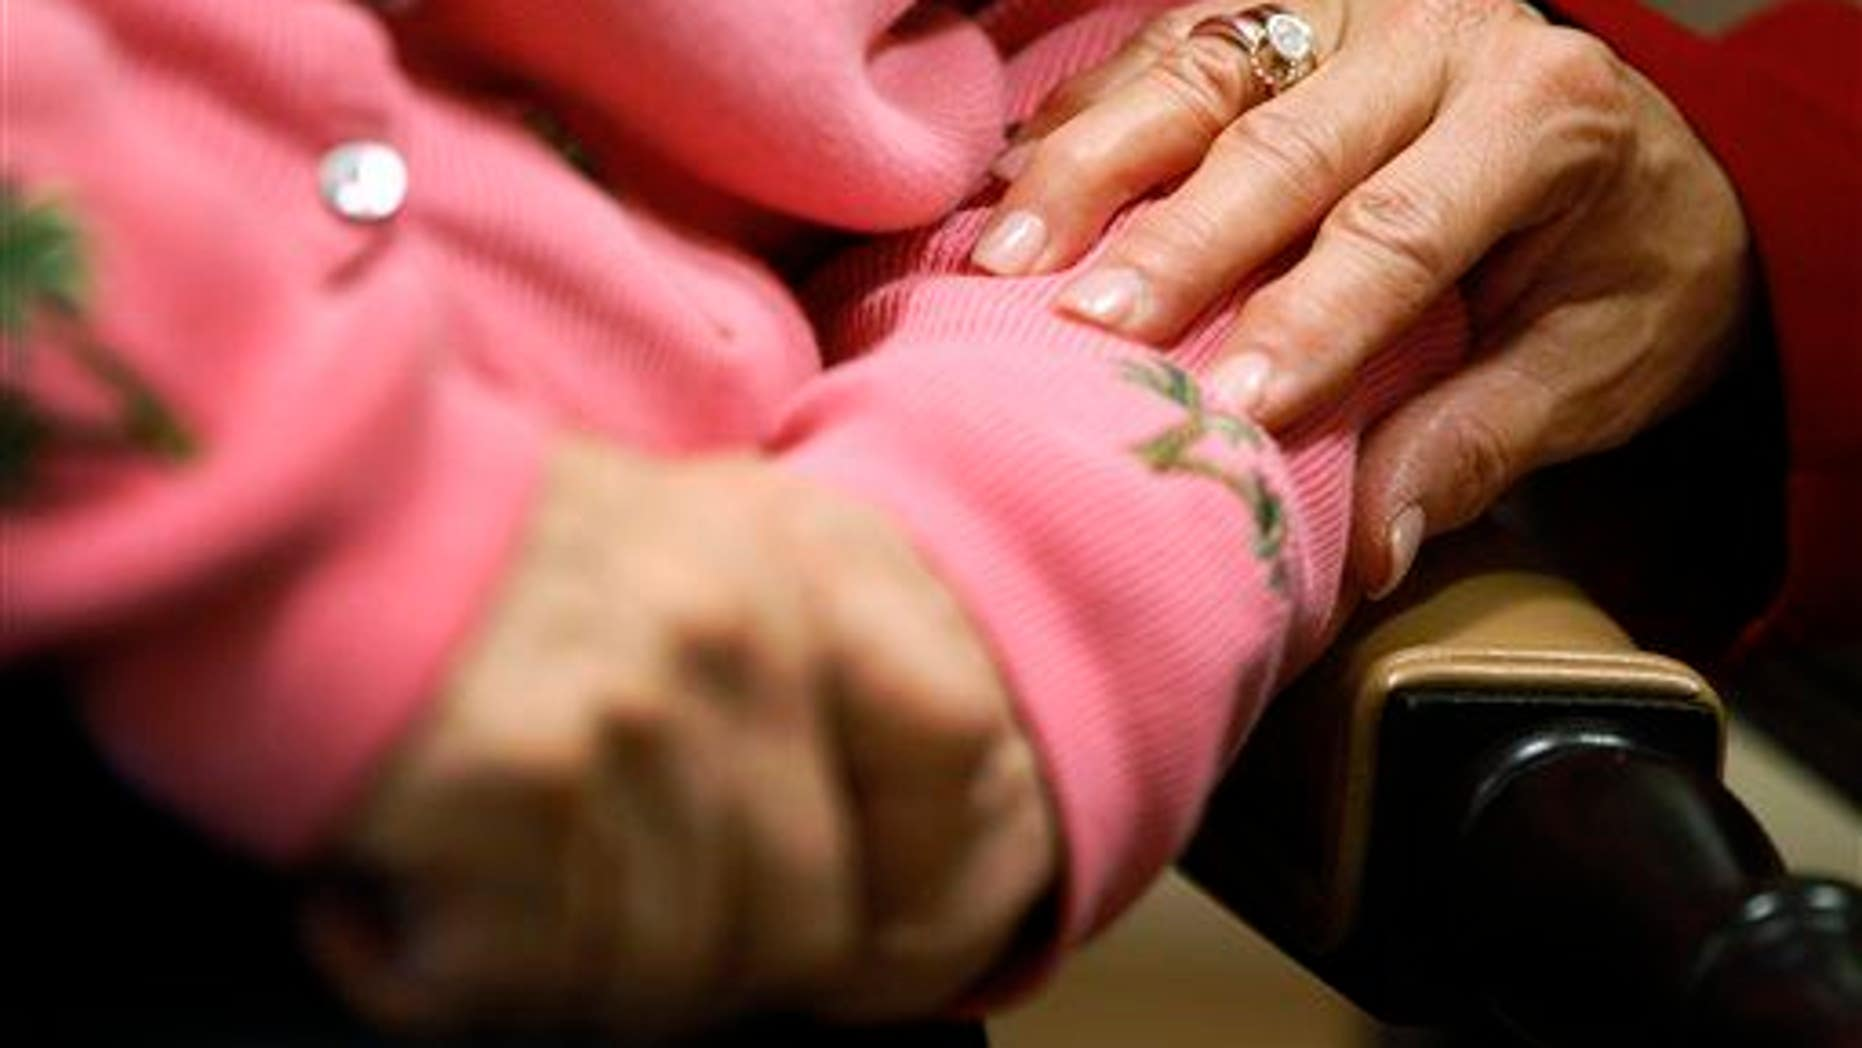 In this Feb. 6, 2012, file photo, a worker at an Alzheimer's assisted-living site puts her hand on the arm of a resident.